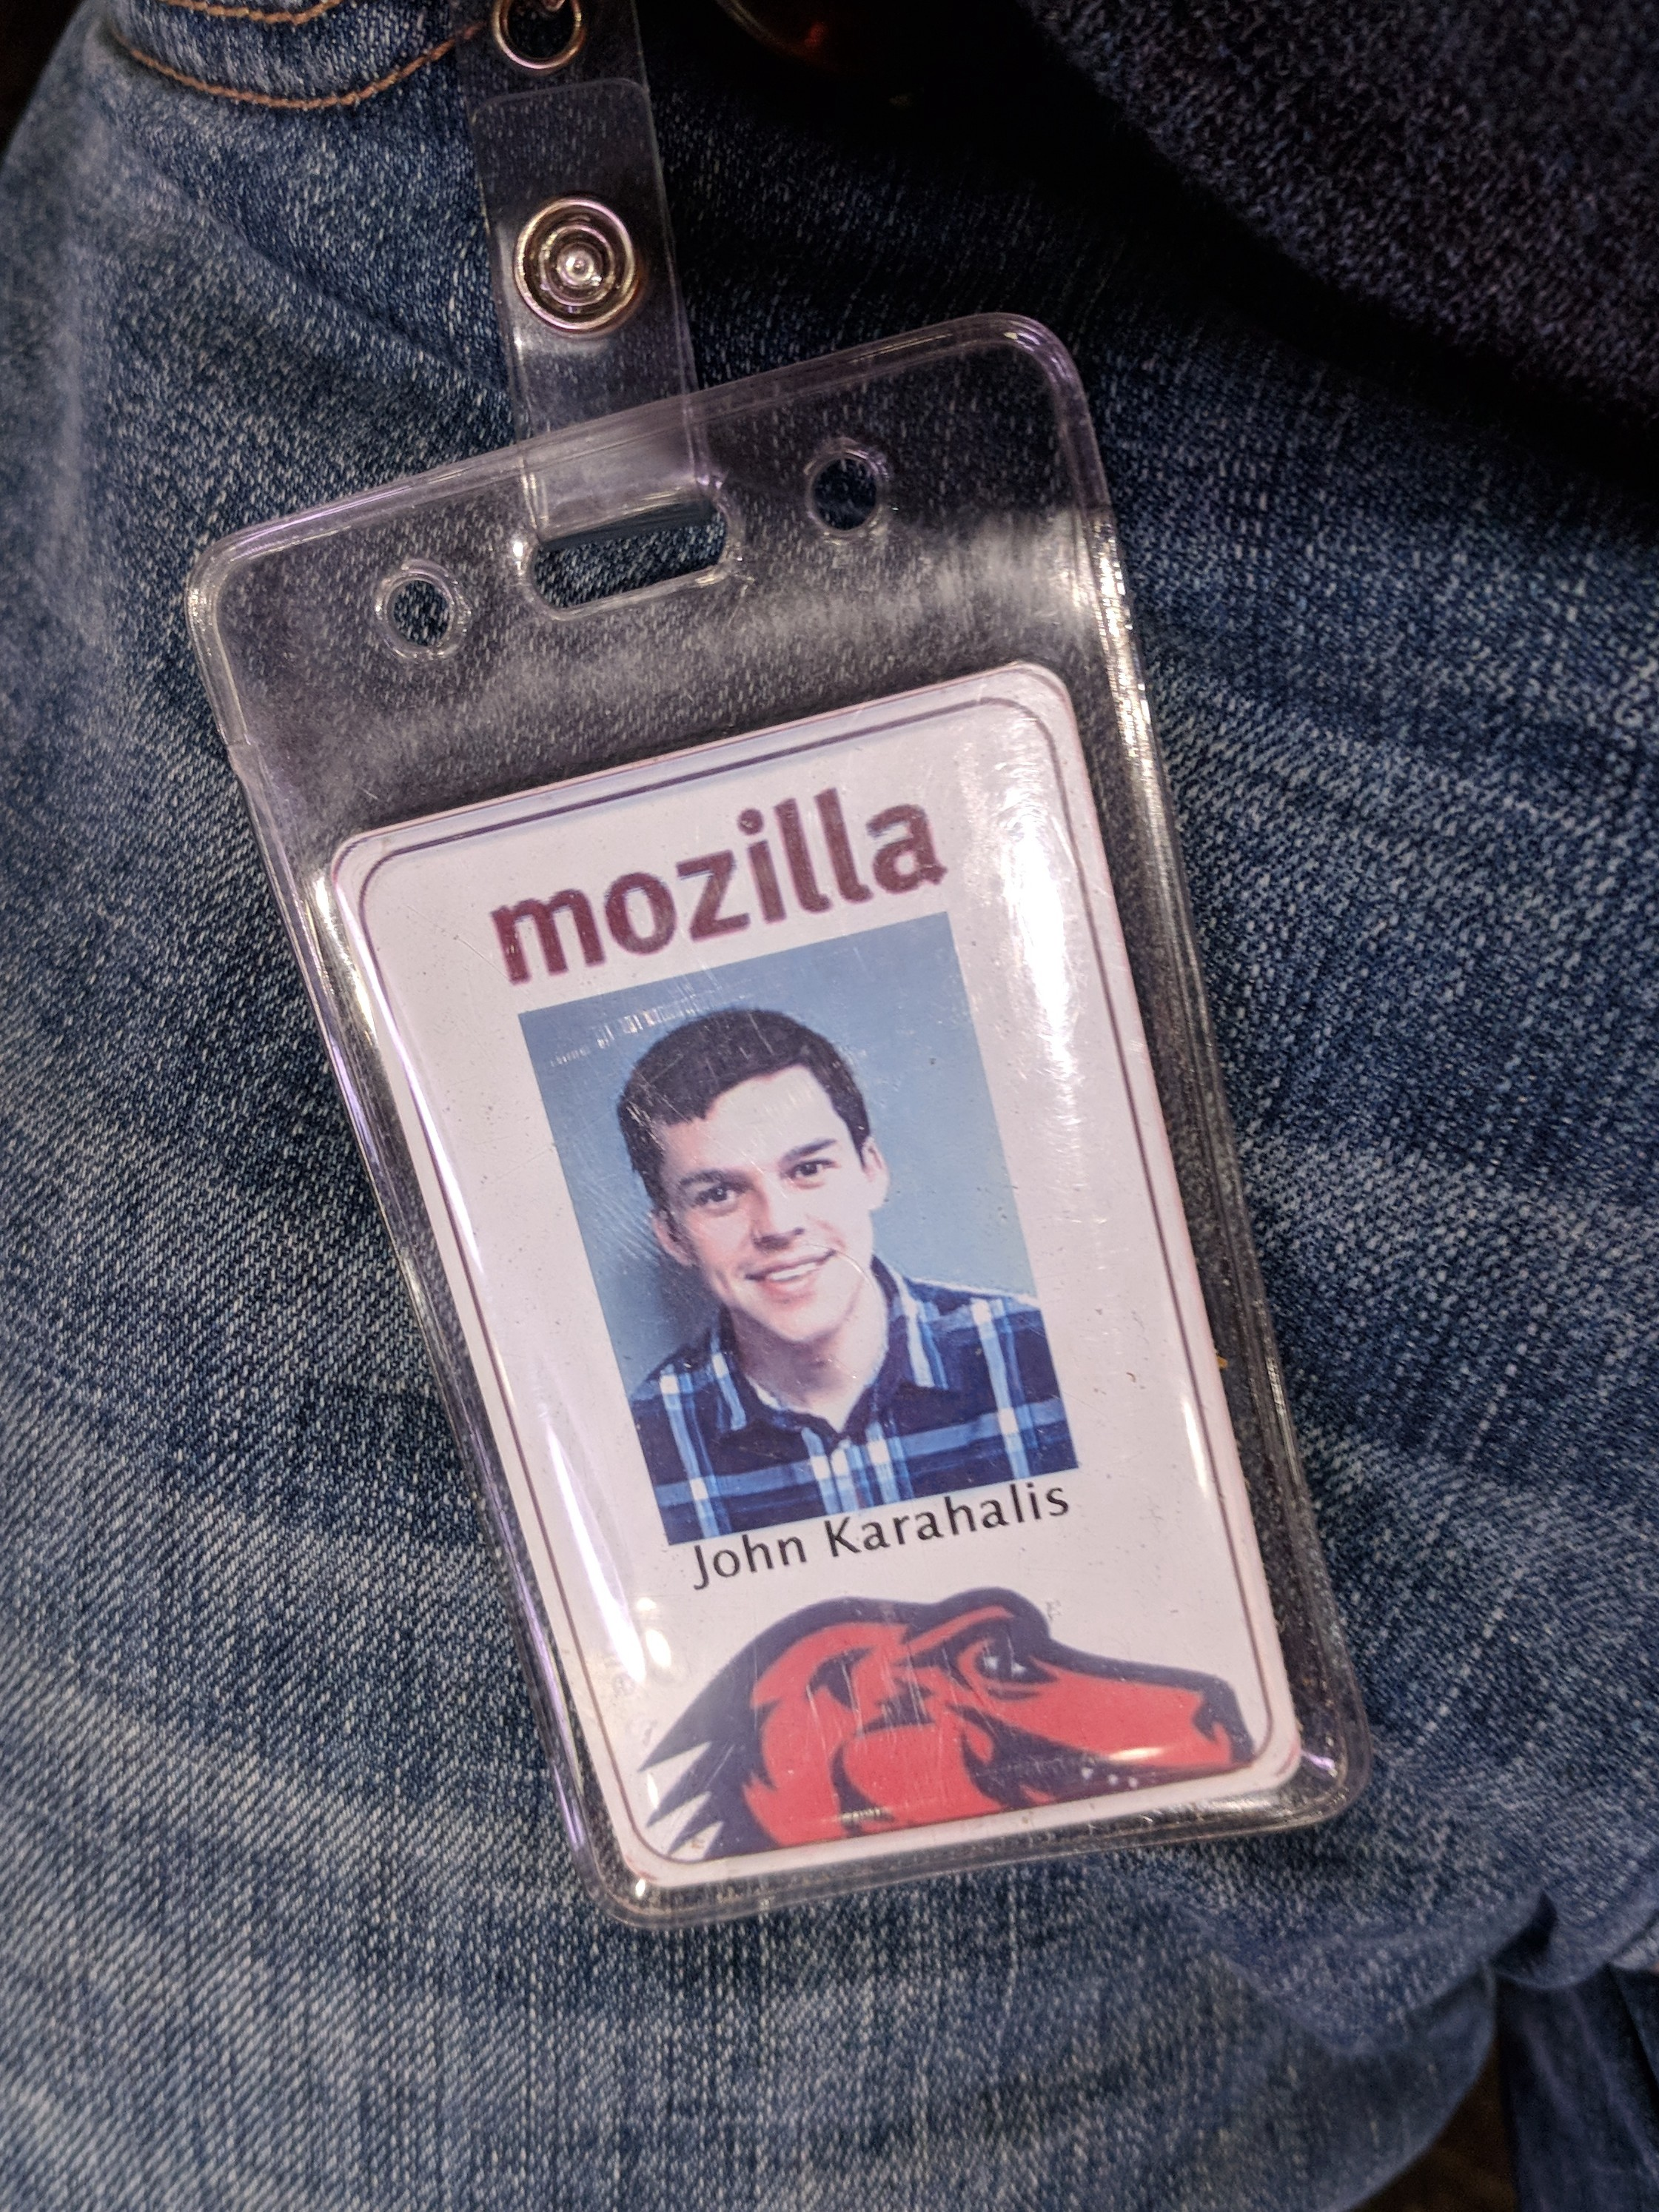 The employee badge for John Karahalis resting against his jeans